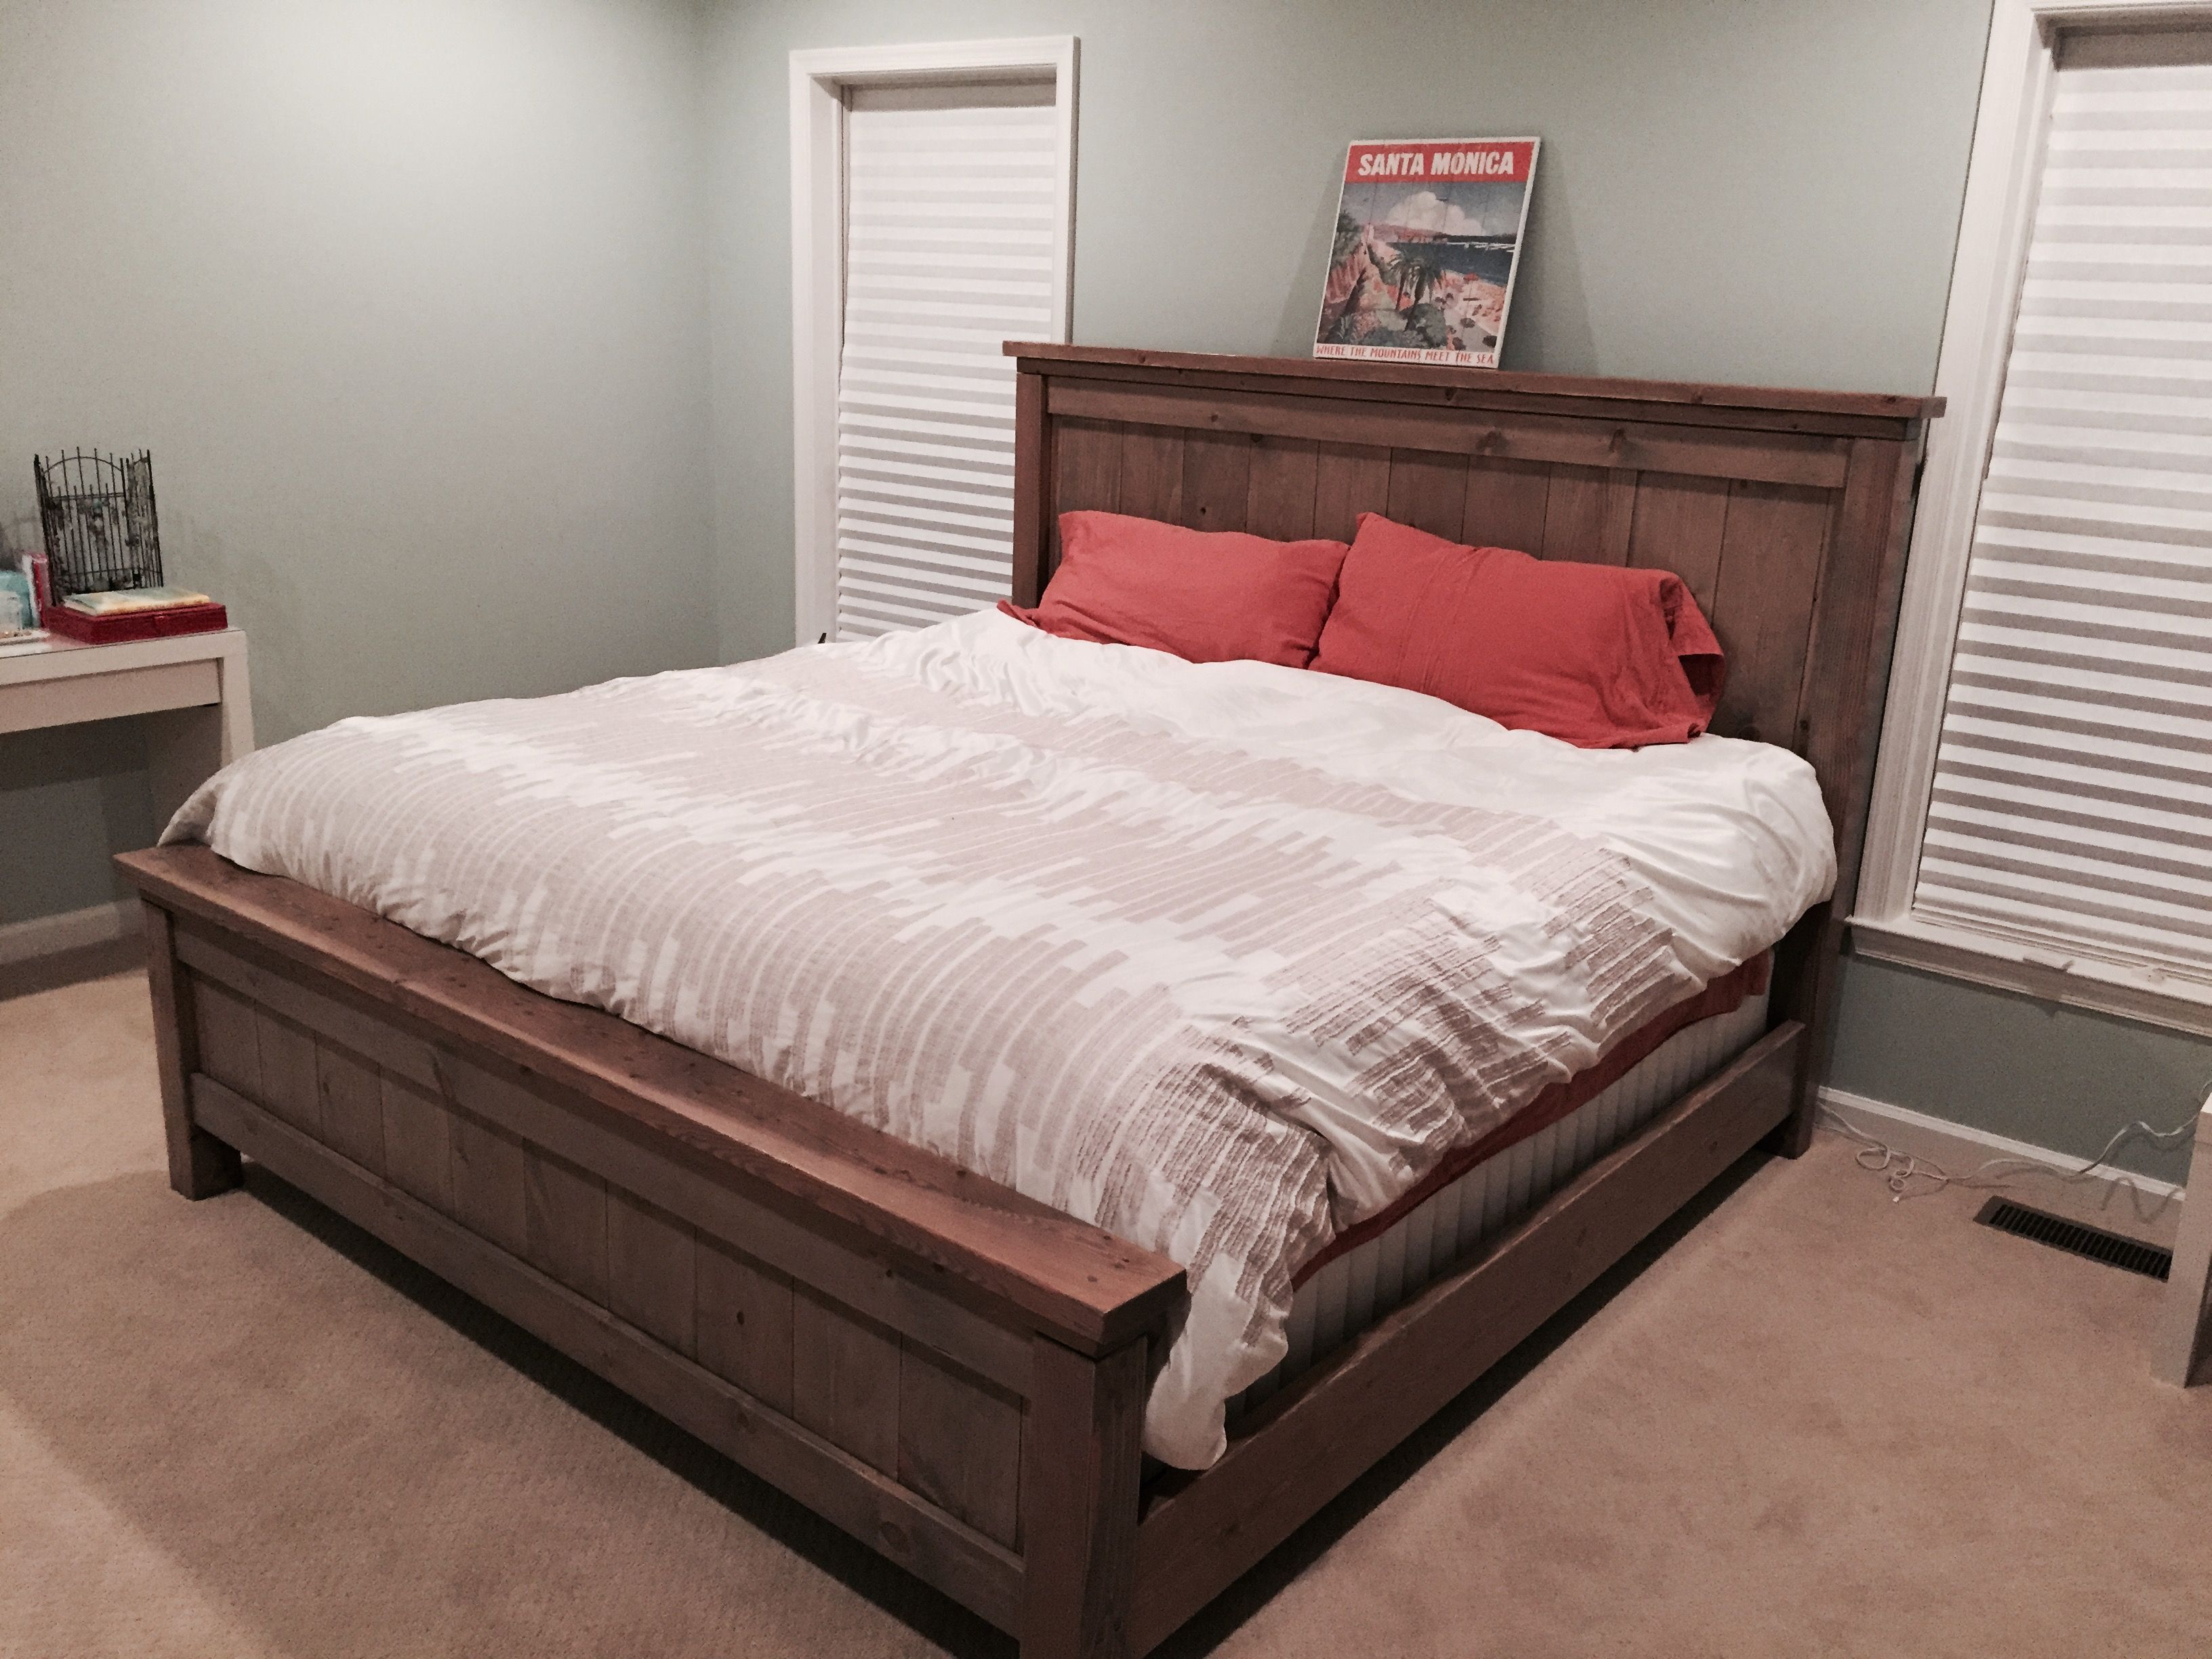 Custom King Bed Frame Do It Yourself Home Projects from